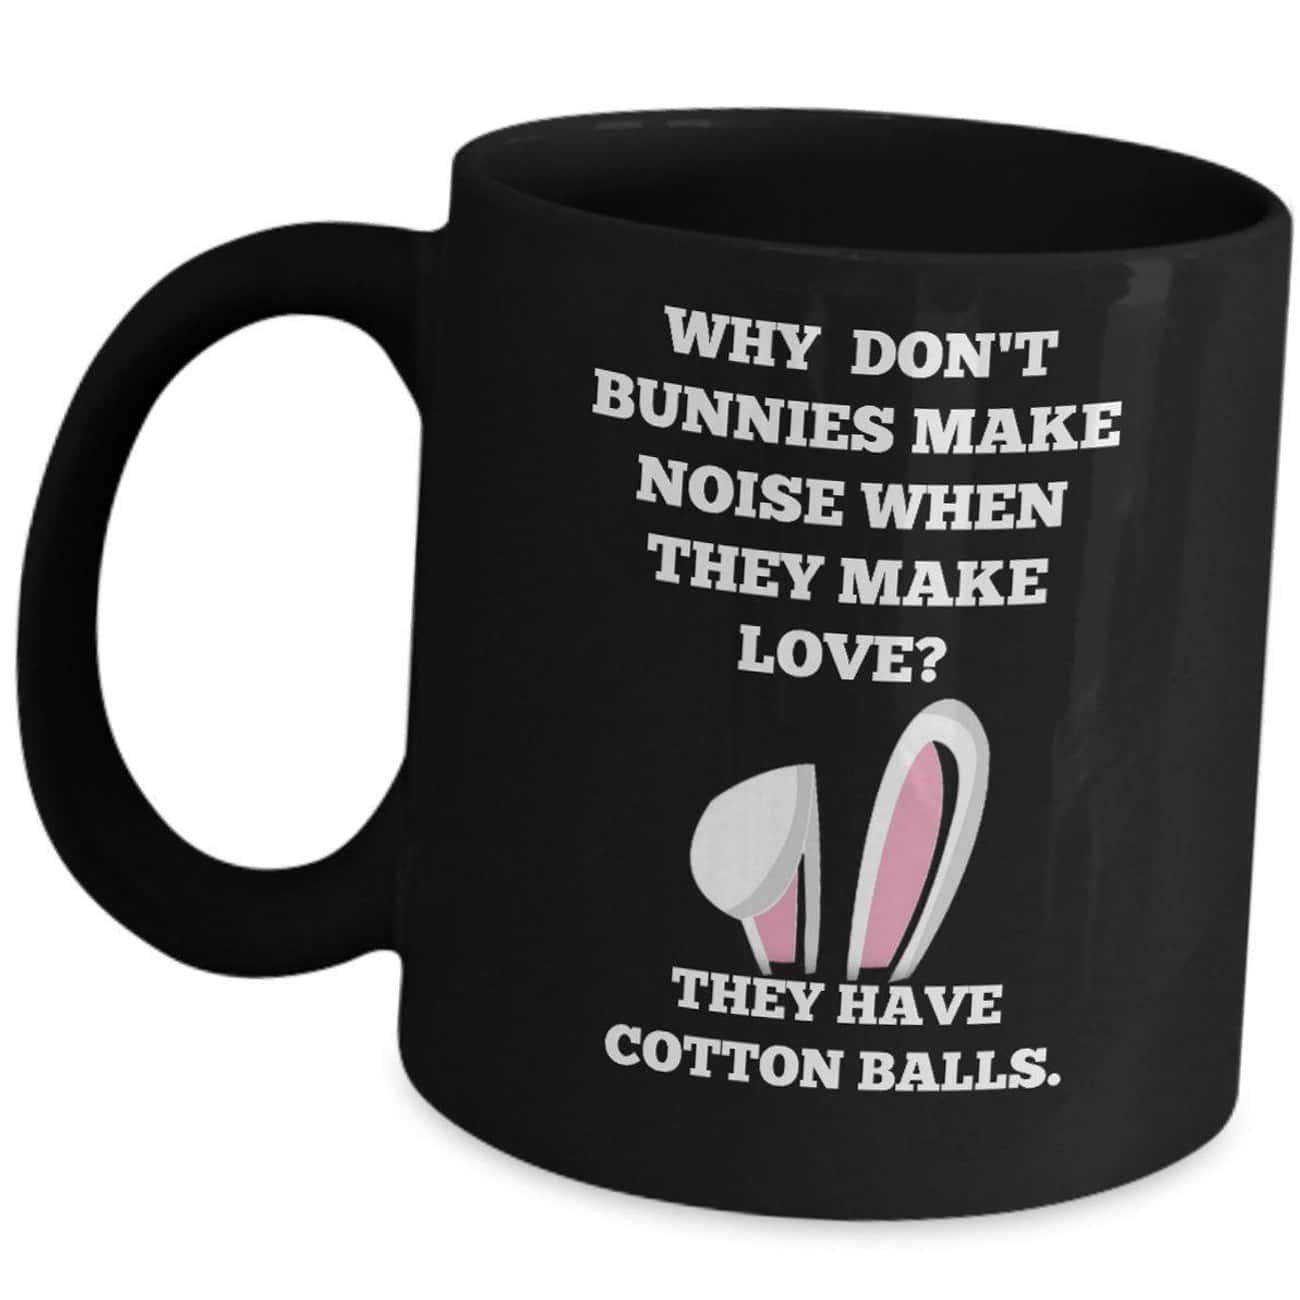 Very Bunny Joke is listed (or ranked) 1 on the list Dirty Mugs To Add A Little Humor To Your Day